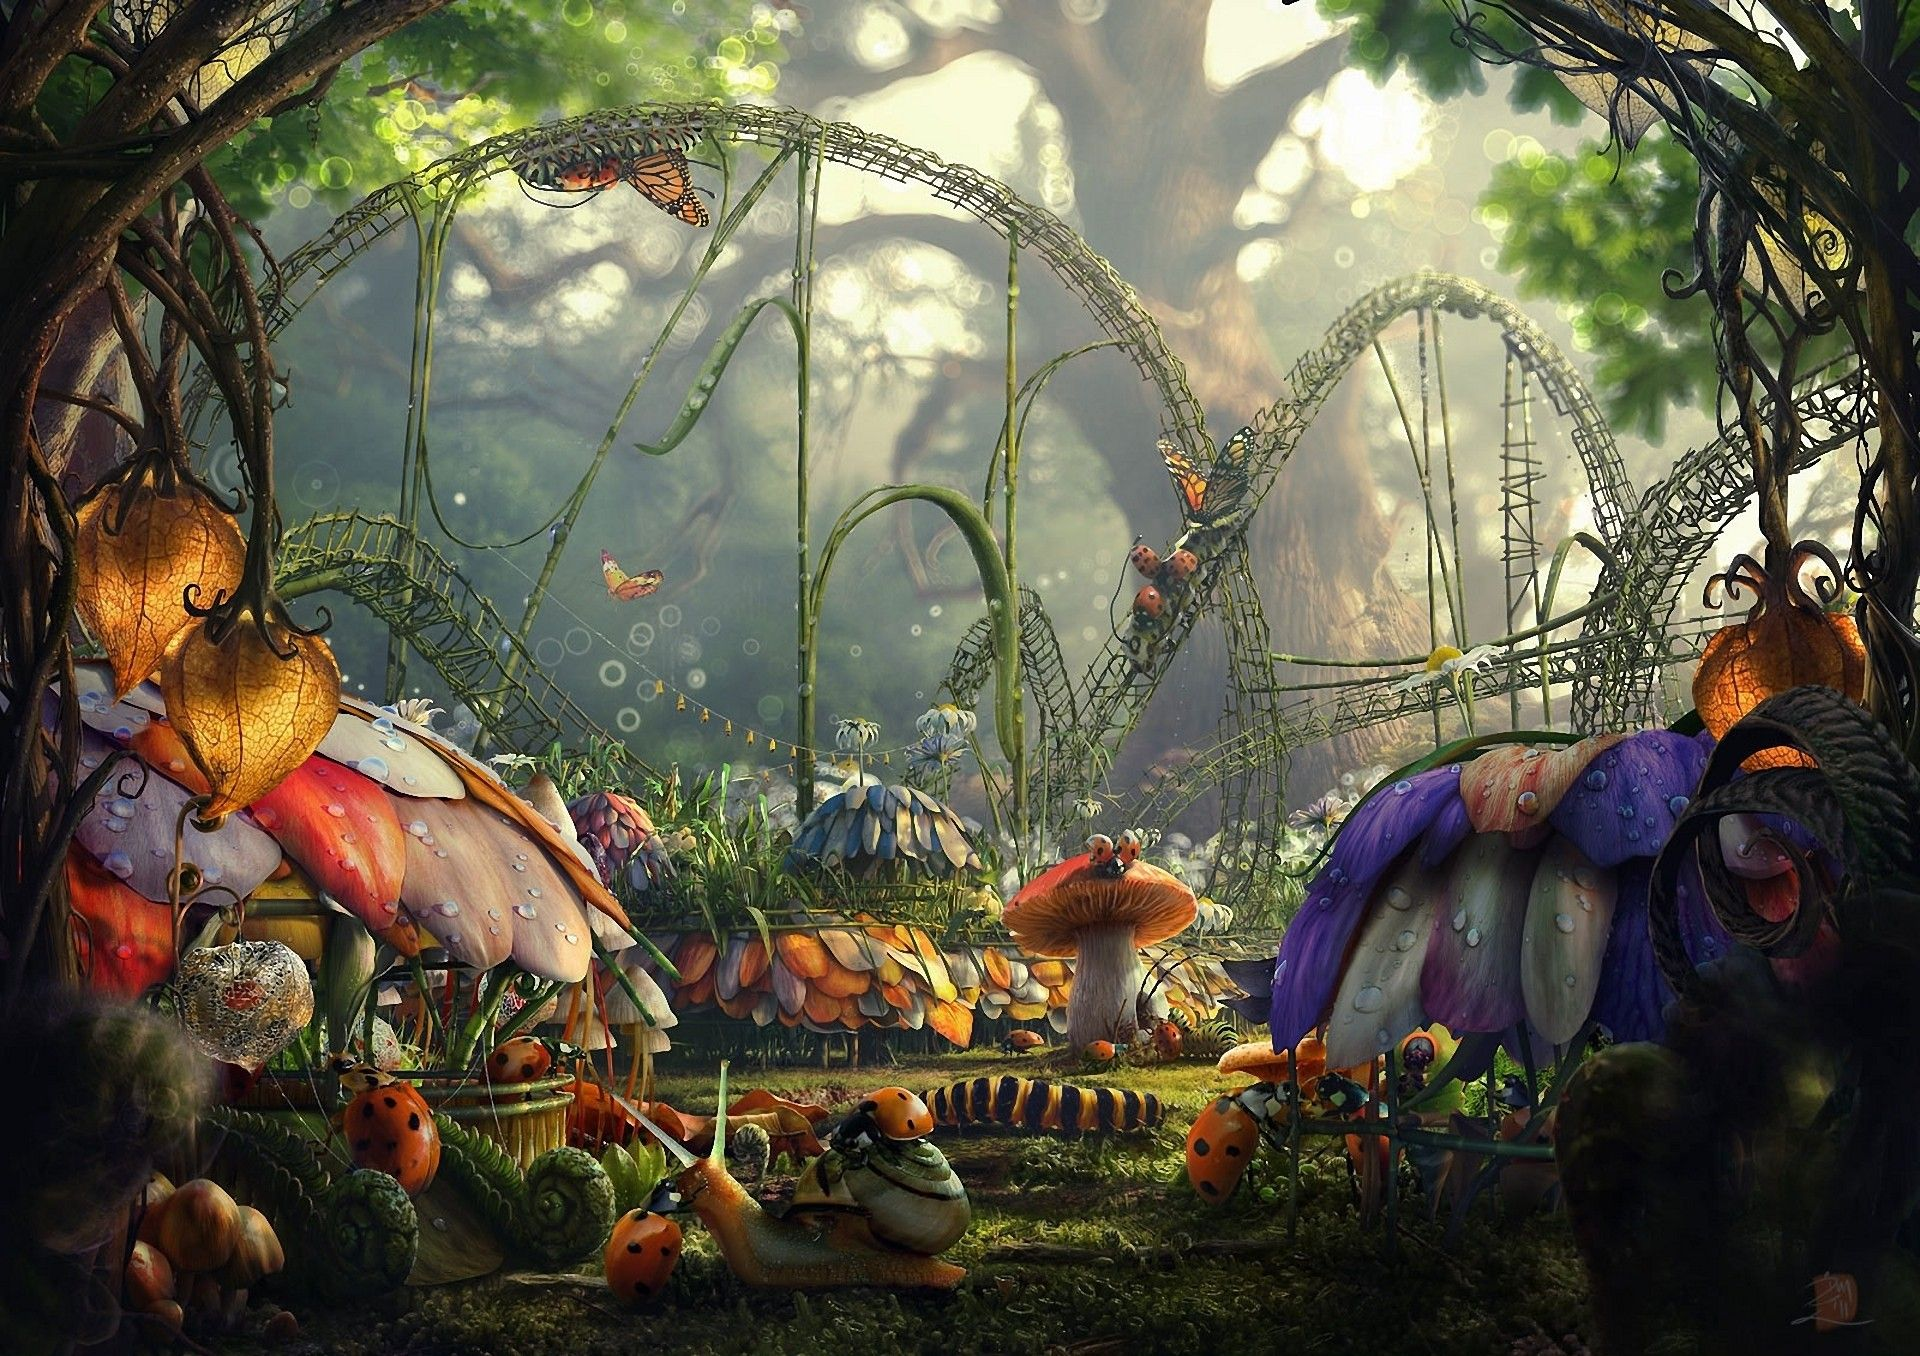 Fantasy Nature HQ Wallpapers Worlds Greatest Art Site